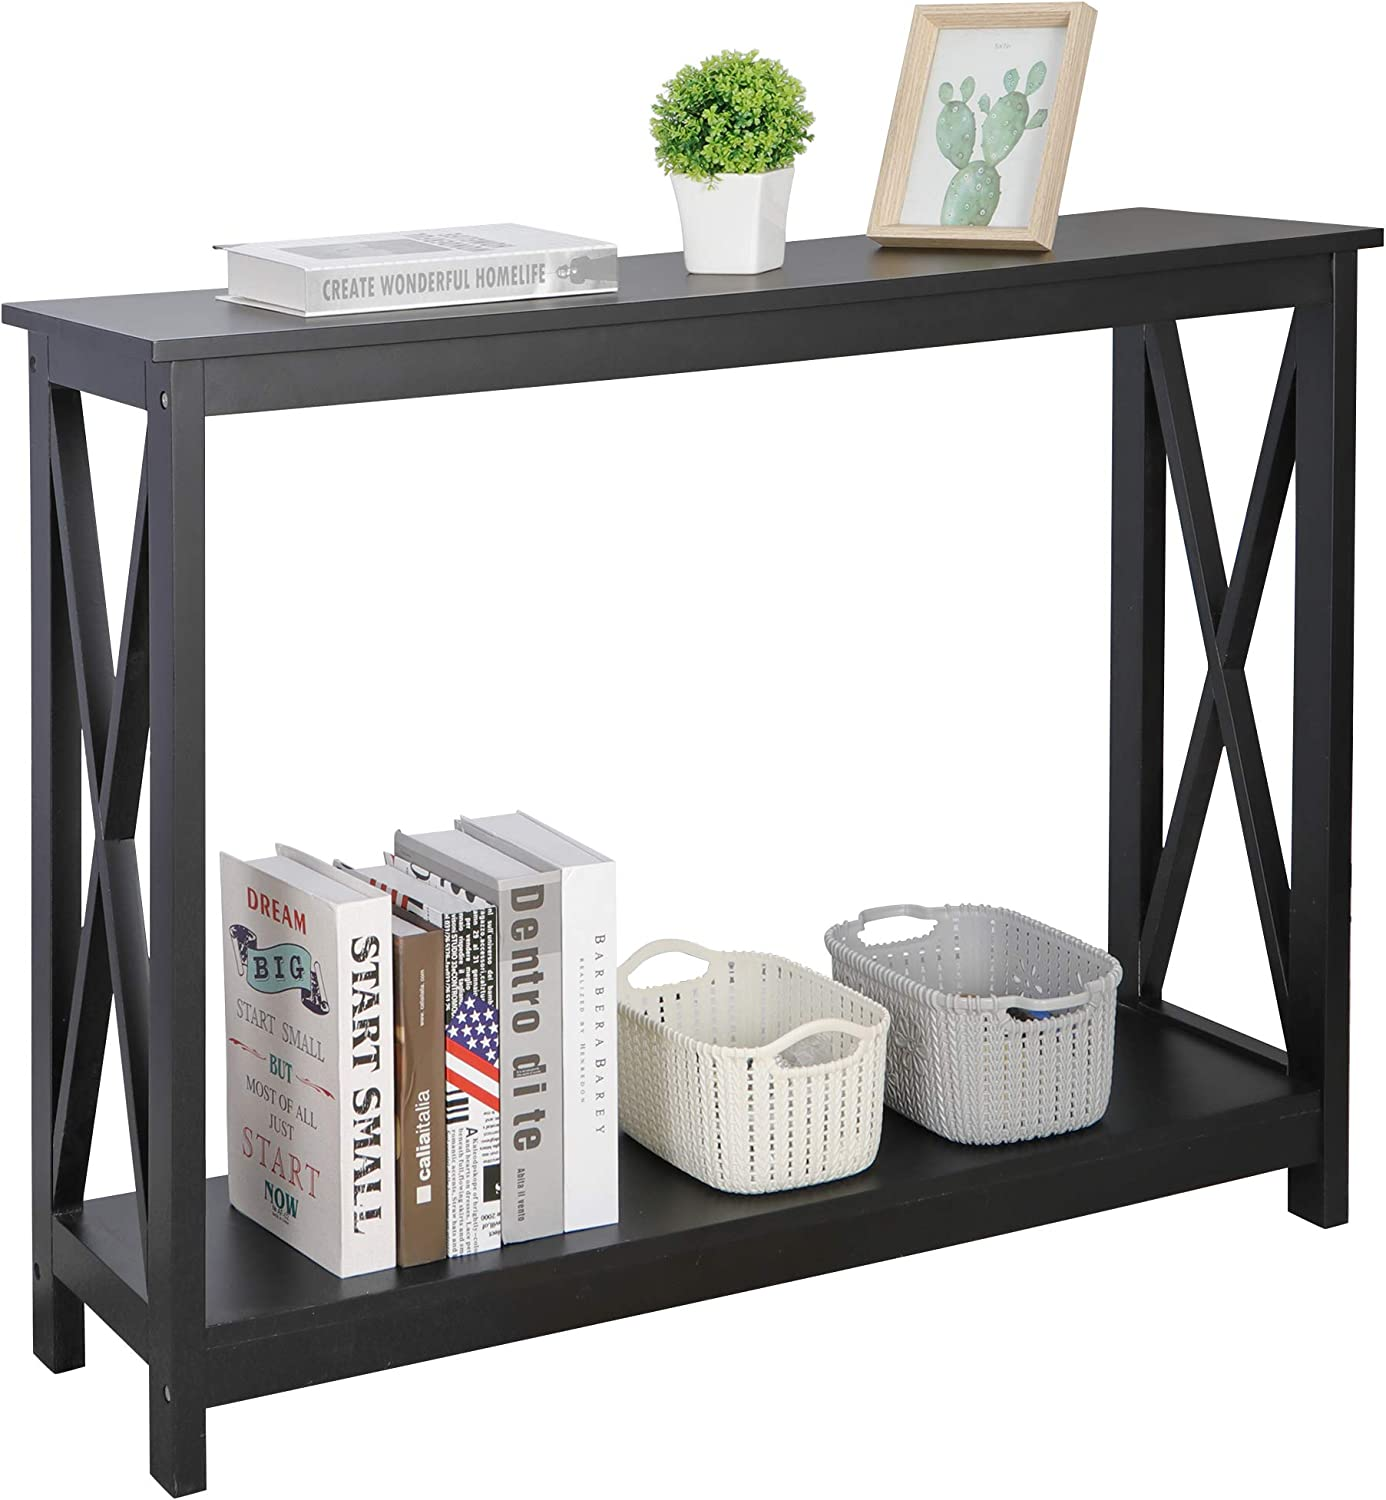 ZenStyle Sofa Side Max 59% OFF Console Table with Shelves Narrow 2 A Sale Special Price Storage